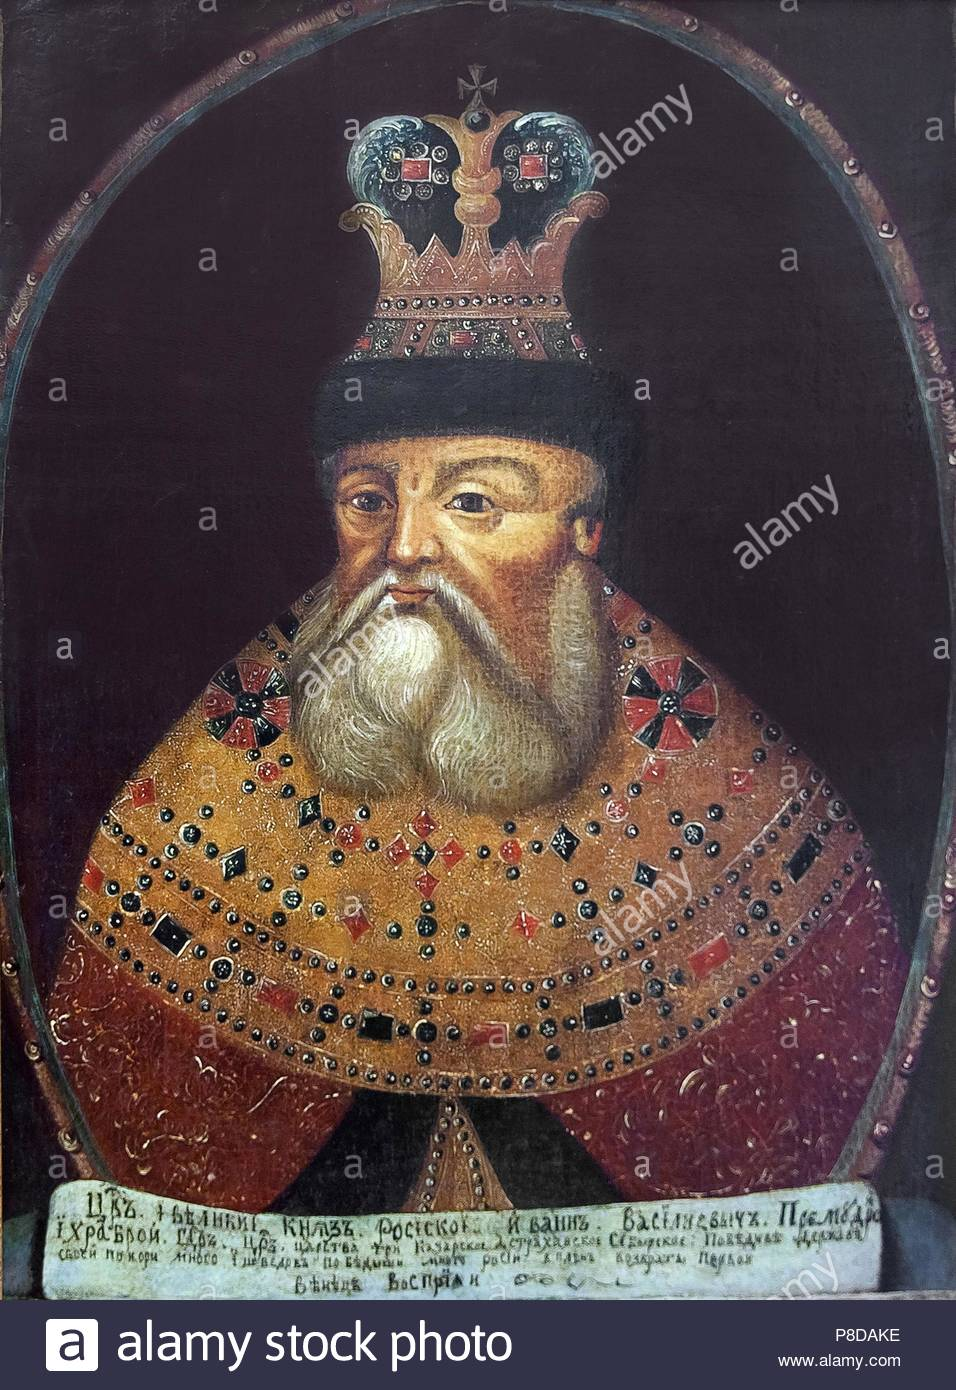 Parsuna (portrait) of the Tsar Ivan IV the Terrible (1530-1584). Museum: State Open-air Museum 'Alexandrovskaya village', Alexandrov. - Stock Image